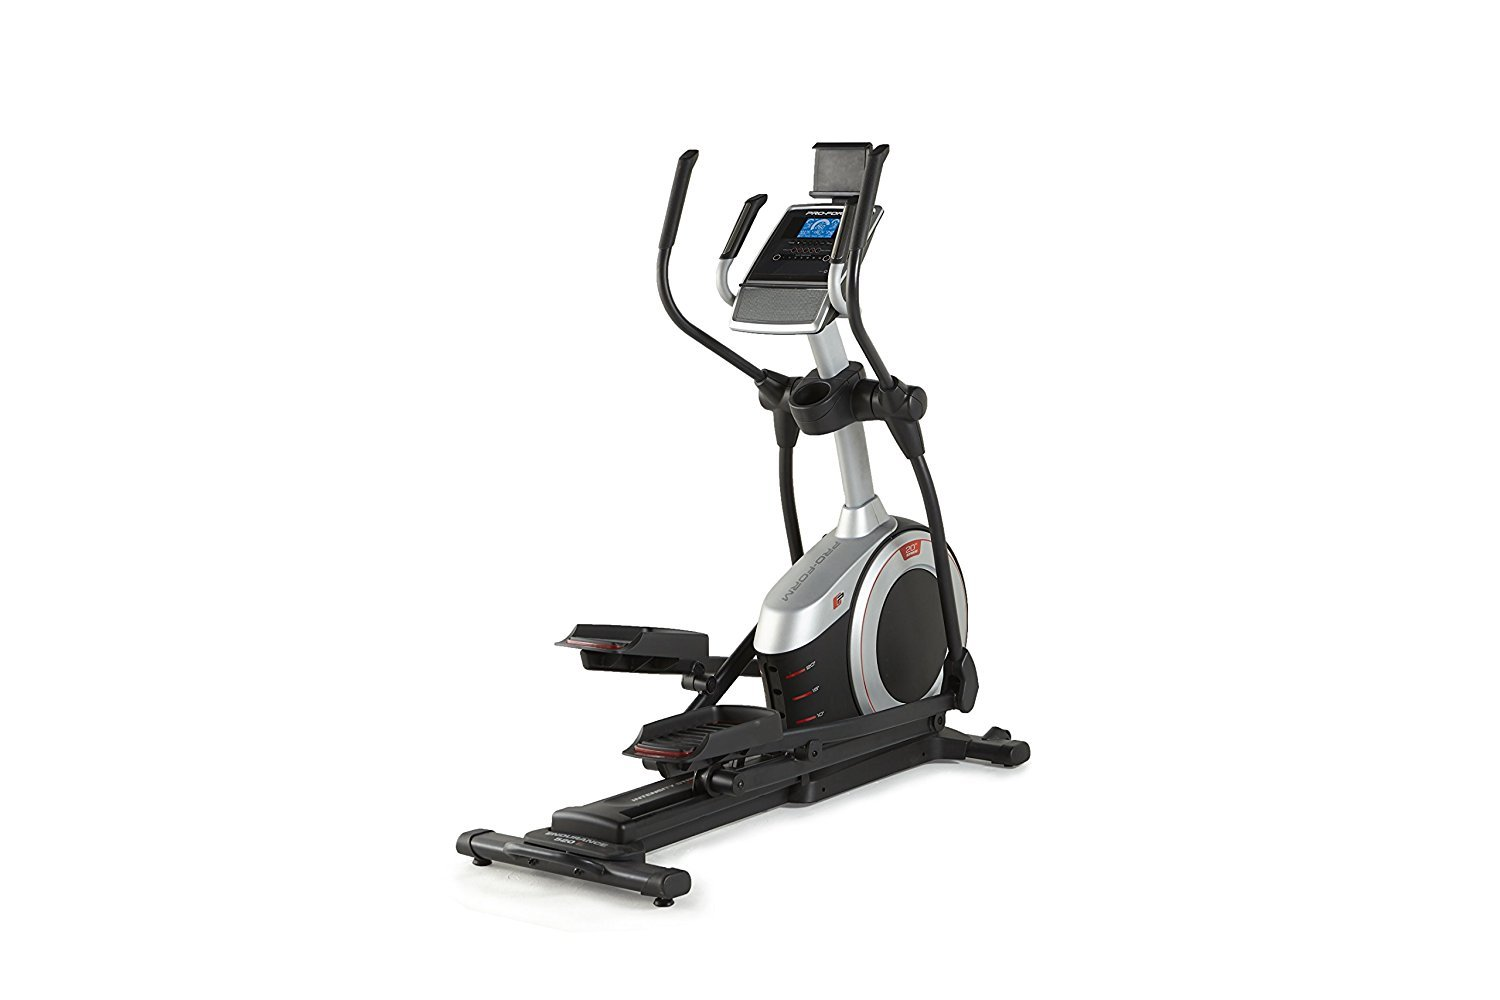 New ProForm Endurance 520 E Elliptical 19'' Adjustable Stride, IFit 5'' display with Bluetooth (BLE),Front Mounted Transport Wheels,18 Preset Workout Apps,EKG bundled with Safecastle Sport Waterbottle